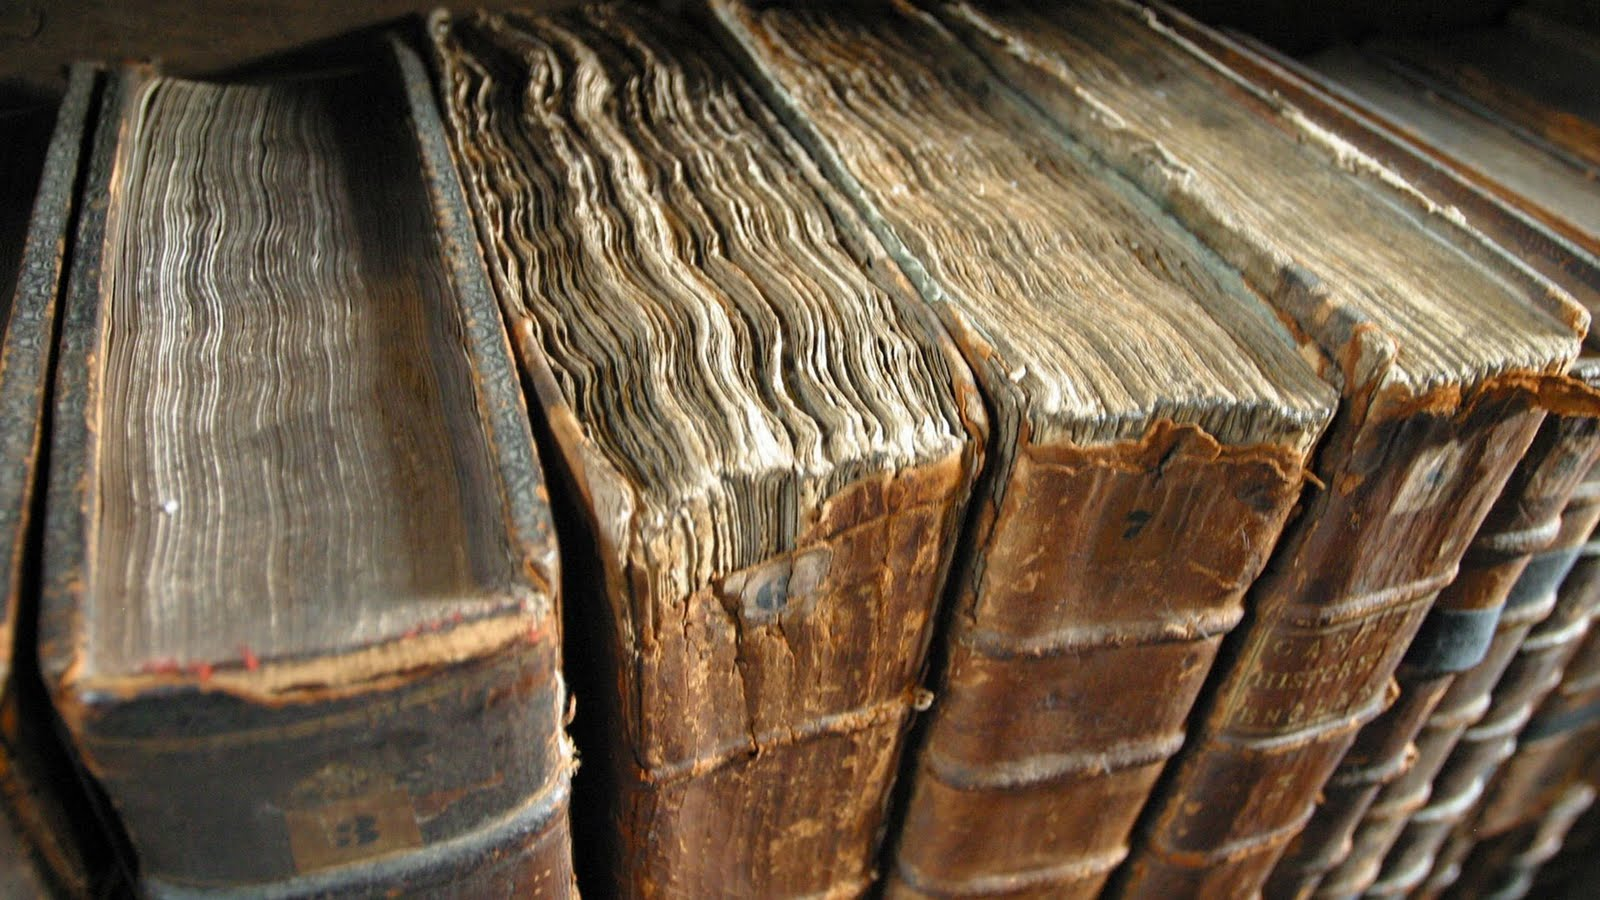 Amusing Athenaeum: Old Books without the Mold